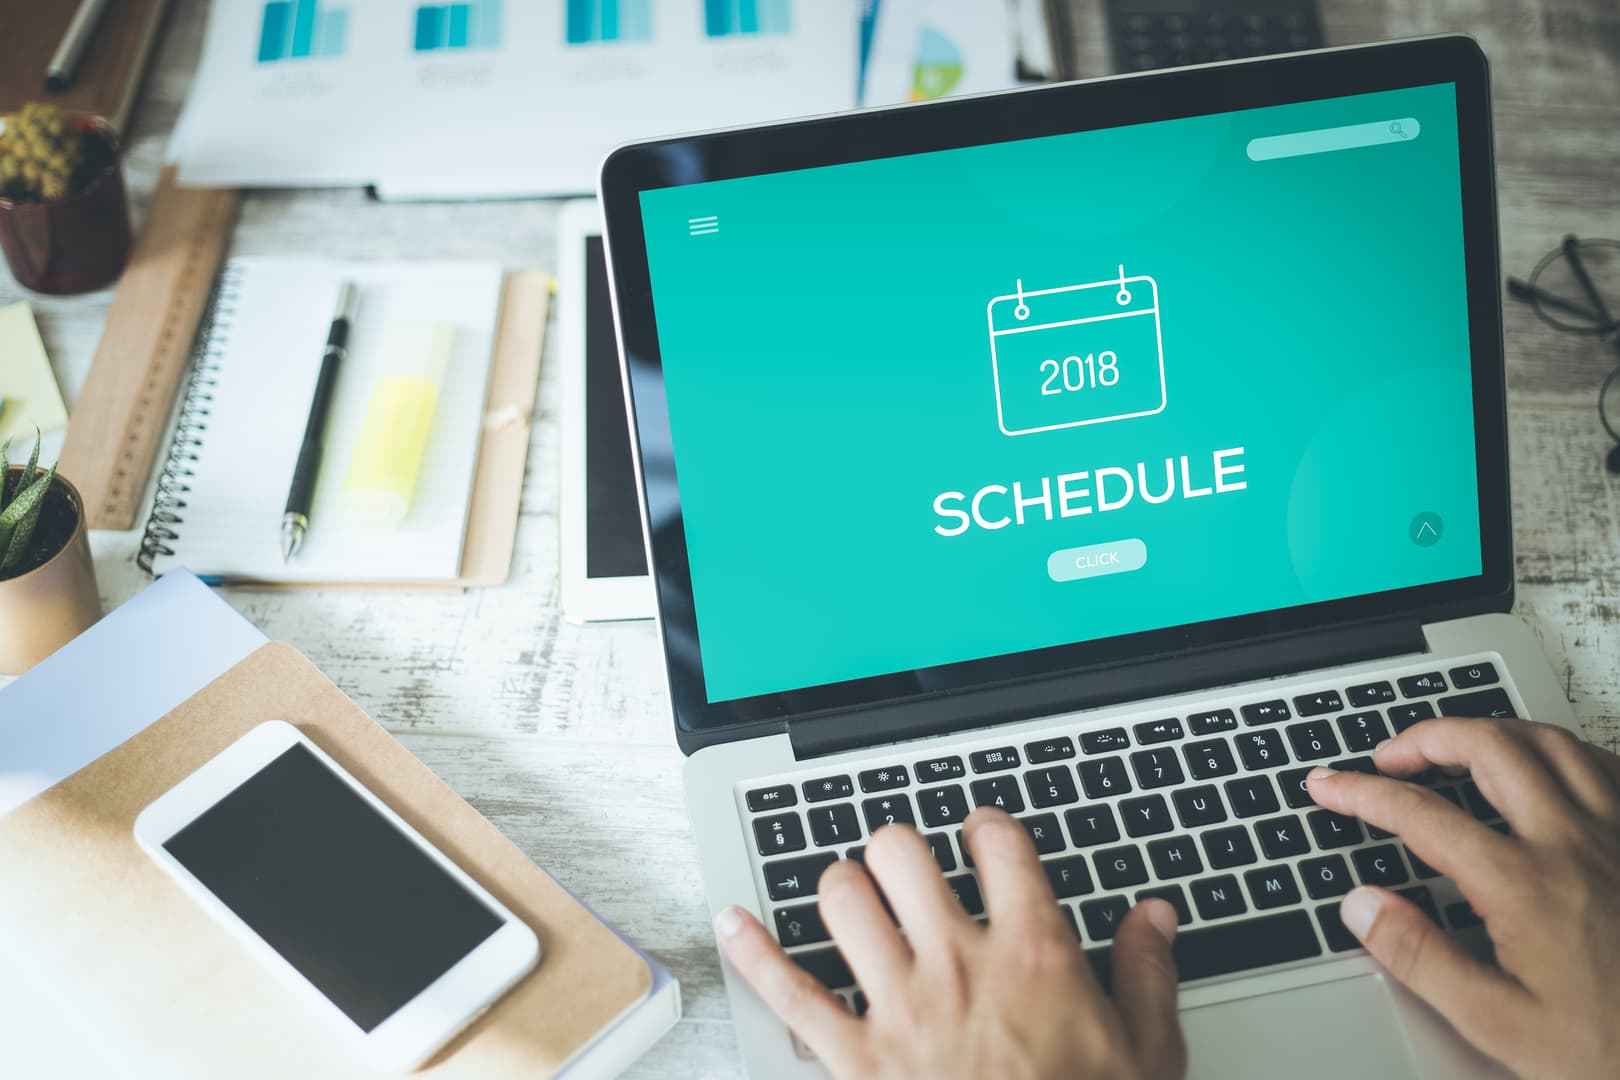 How Chiropractic Scheduling Software Can Improve Your Practice